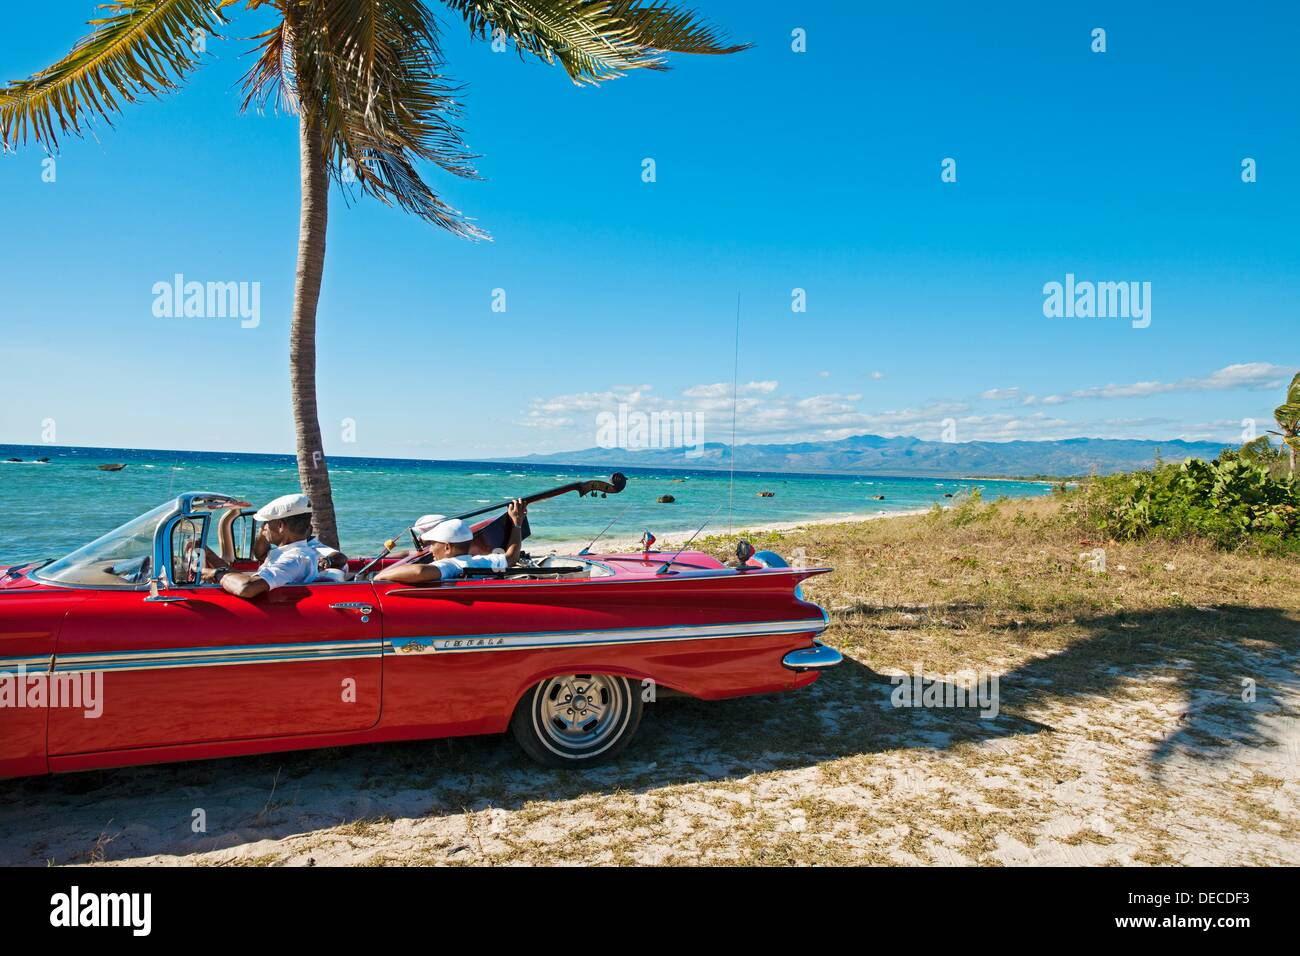 Ancon Beach Classic Car And Music Band Trinidad City Sancti Spiritus Province